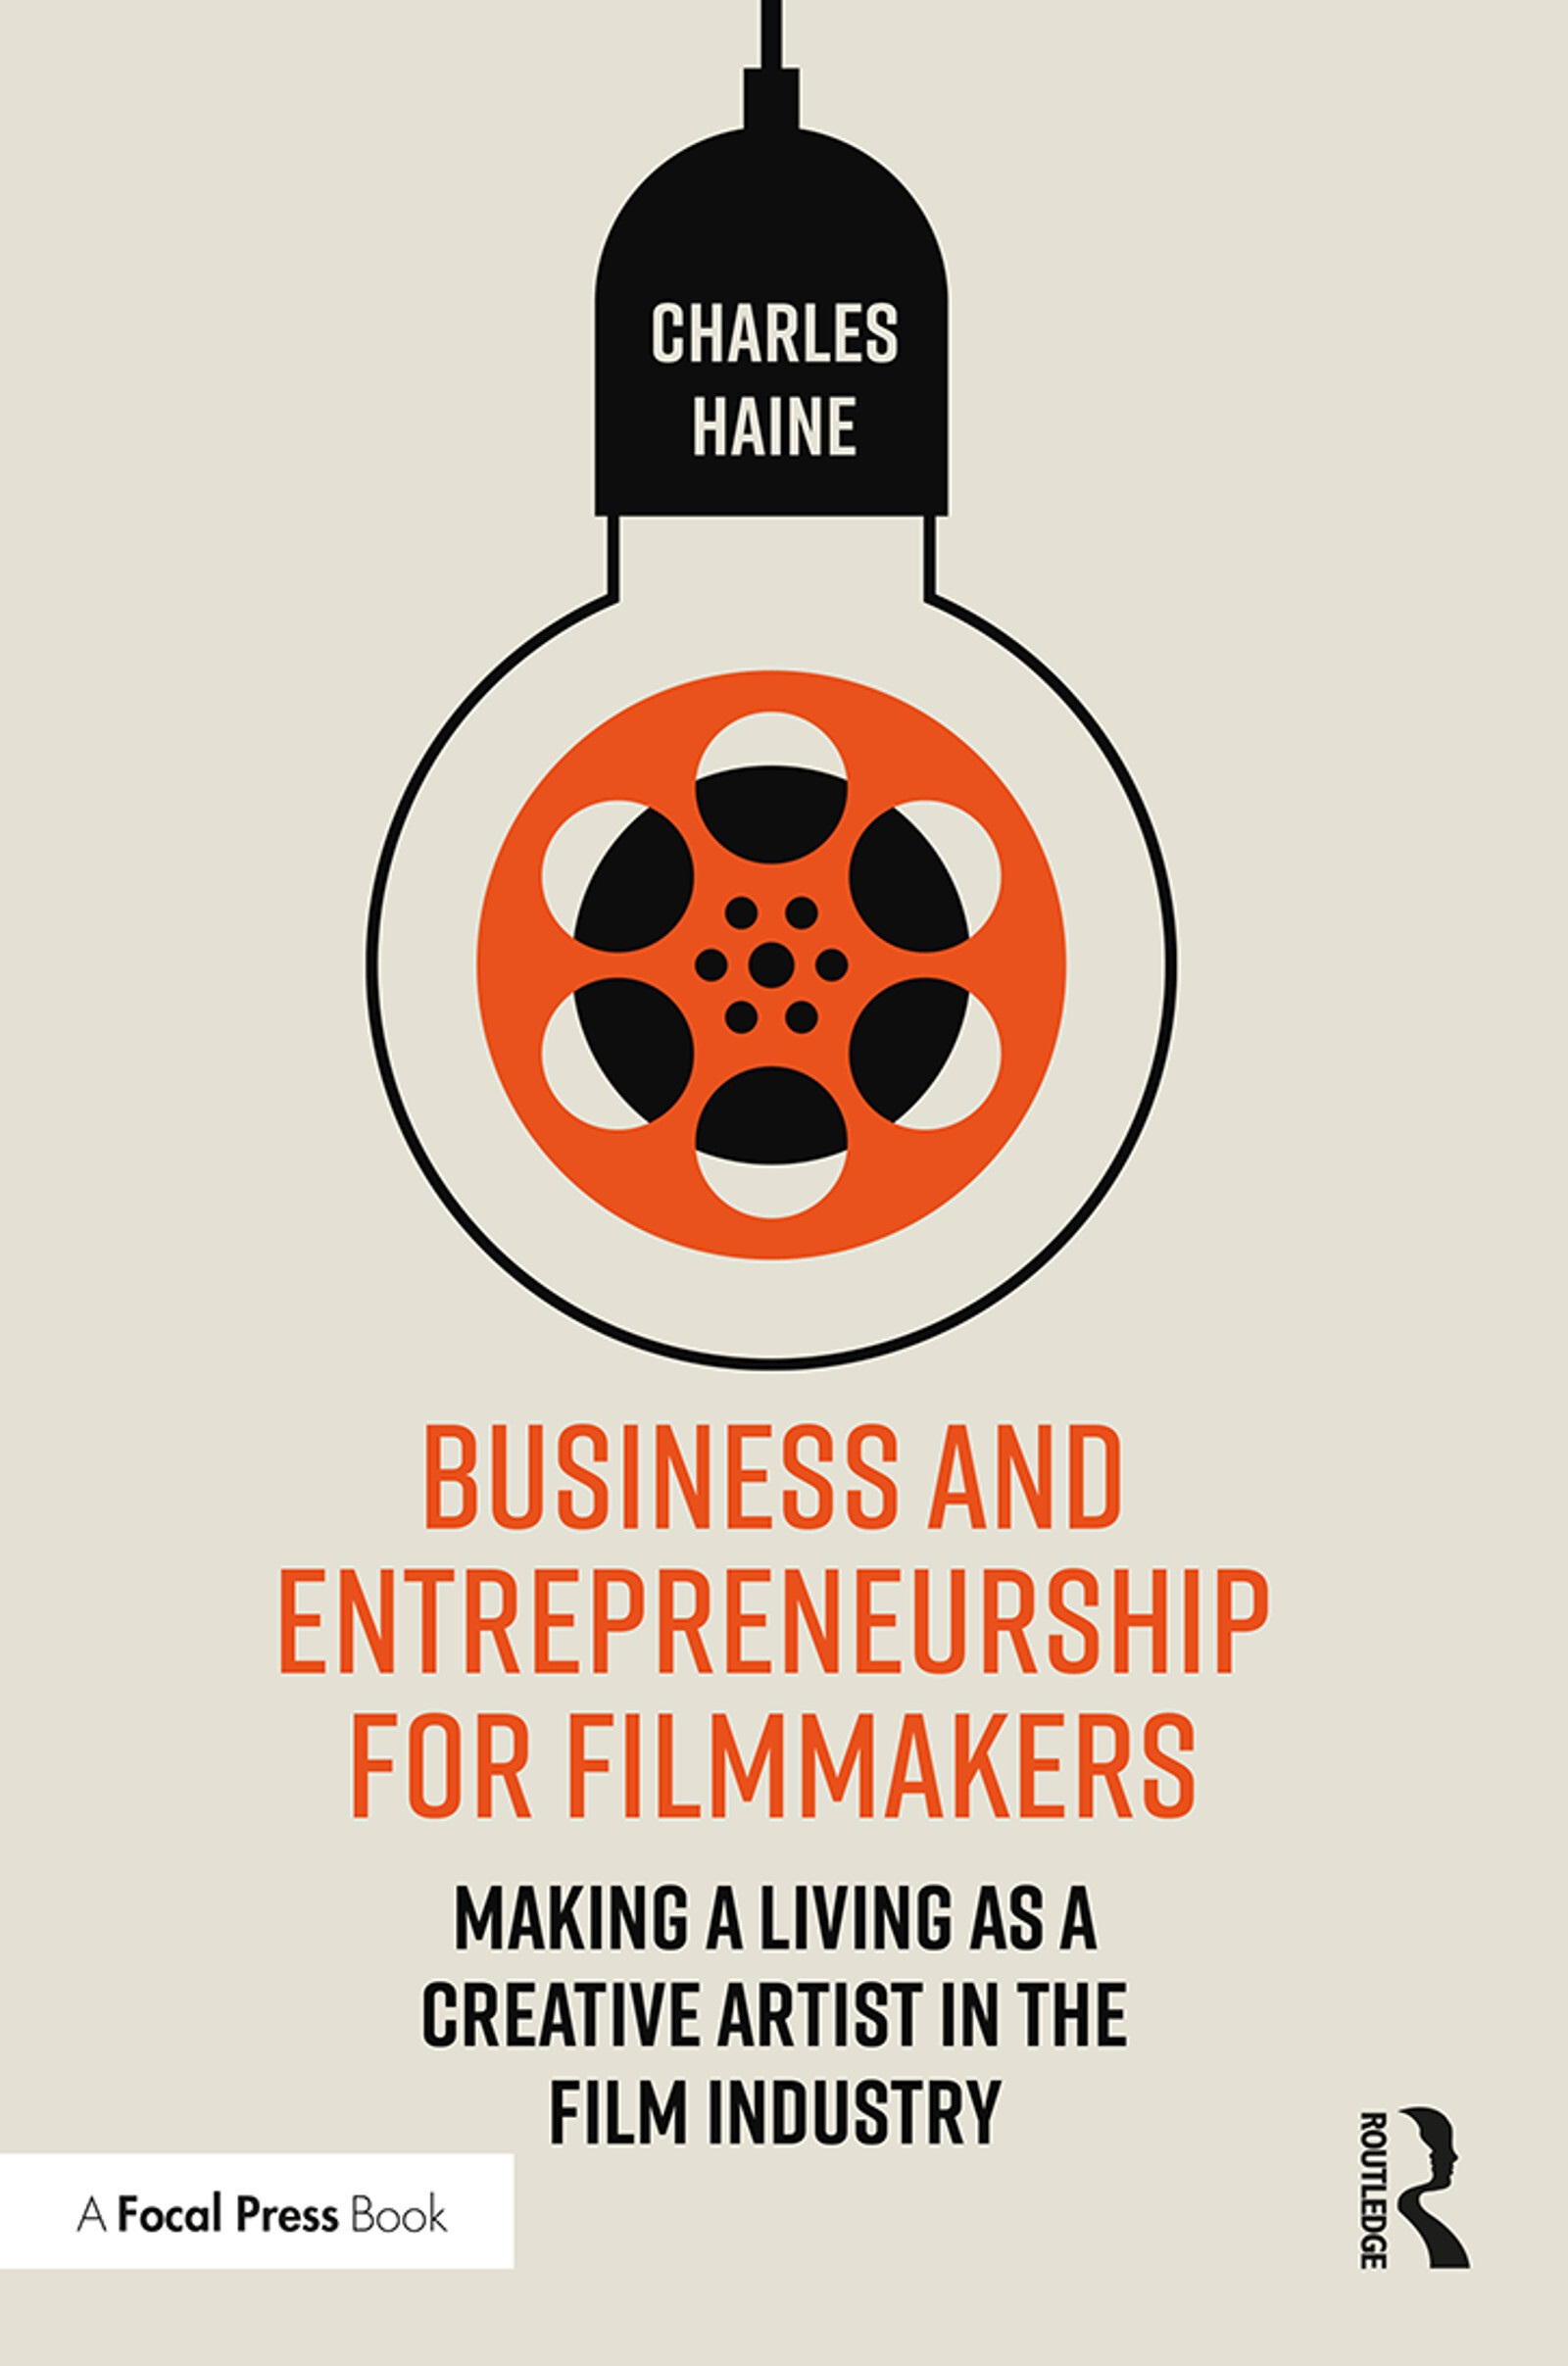 cover of Charles Haine	Business and Entrepreneurship for Filmmakers: Making a Living as a Creative Artist in the Film Industry. Routledge, 2019.	PN1995.9 .P7 H345 2020